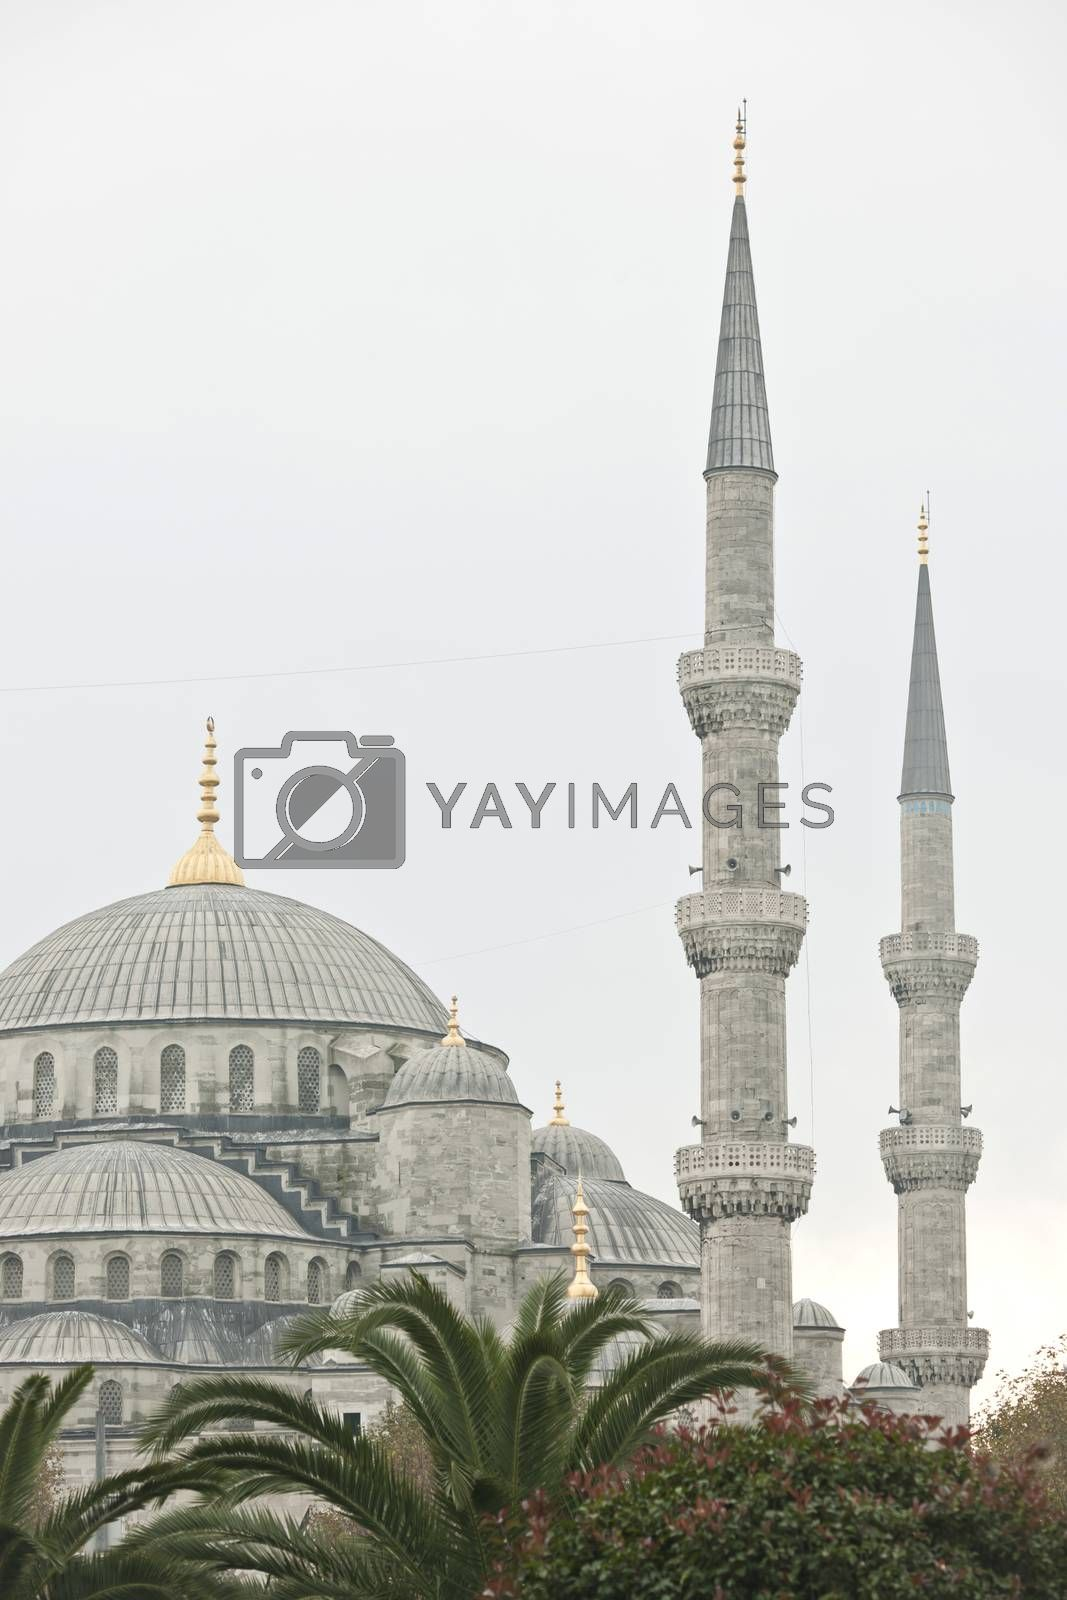 The Blue Mosque in Istanbul, Turkey by emirkoo